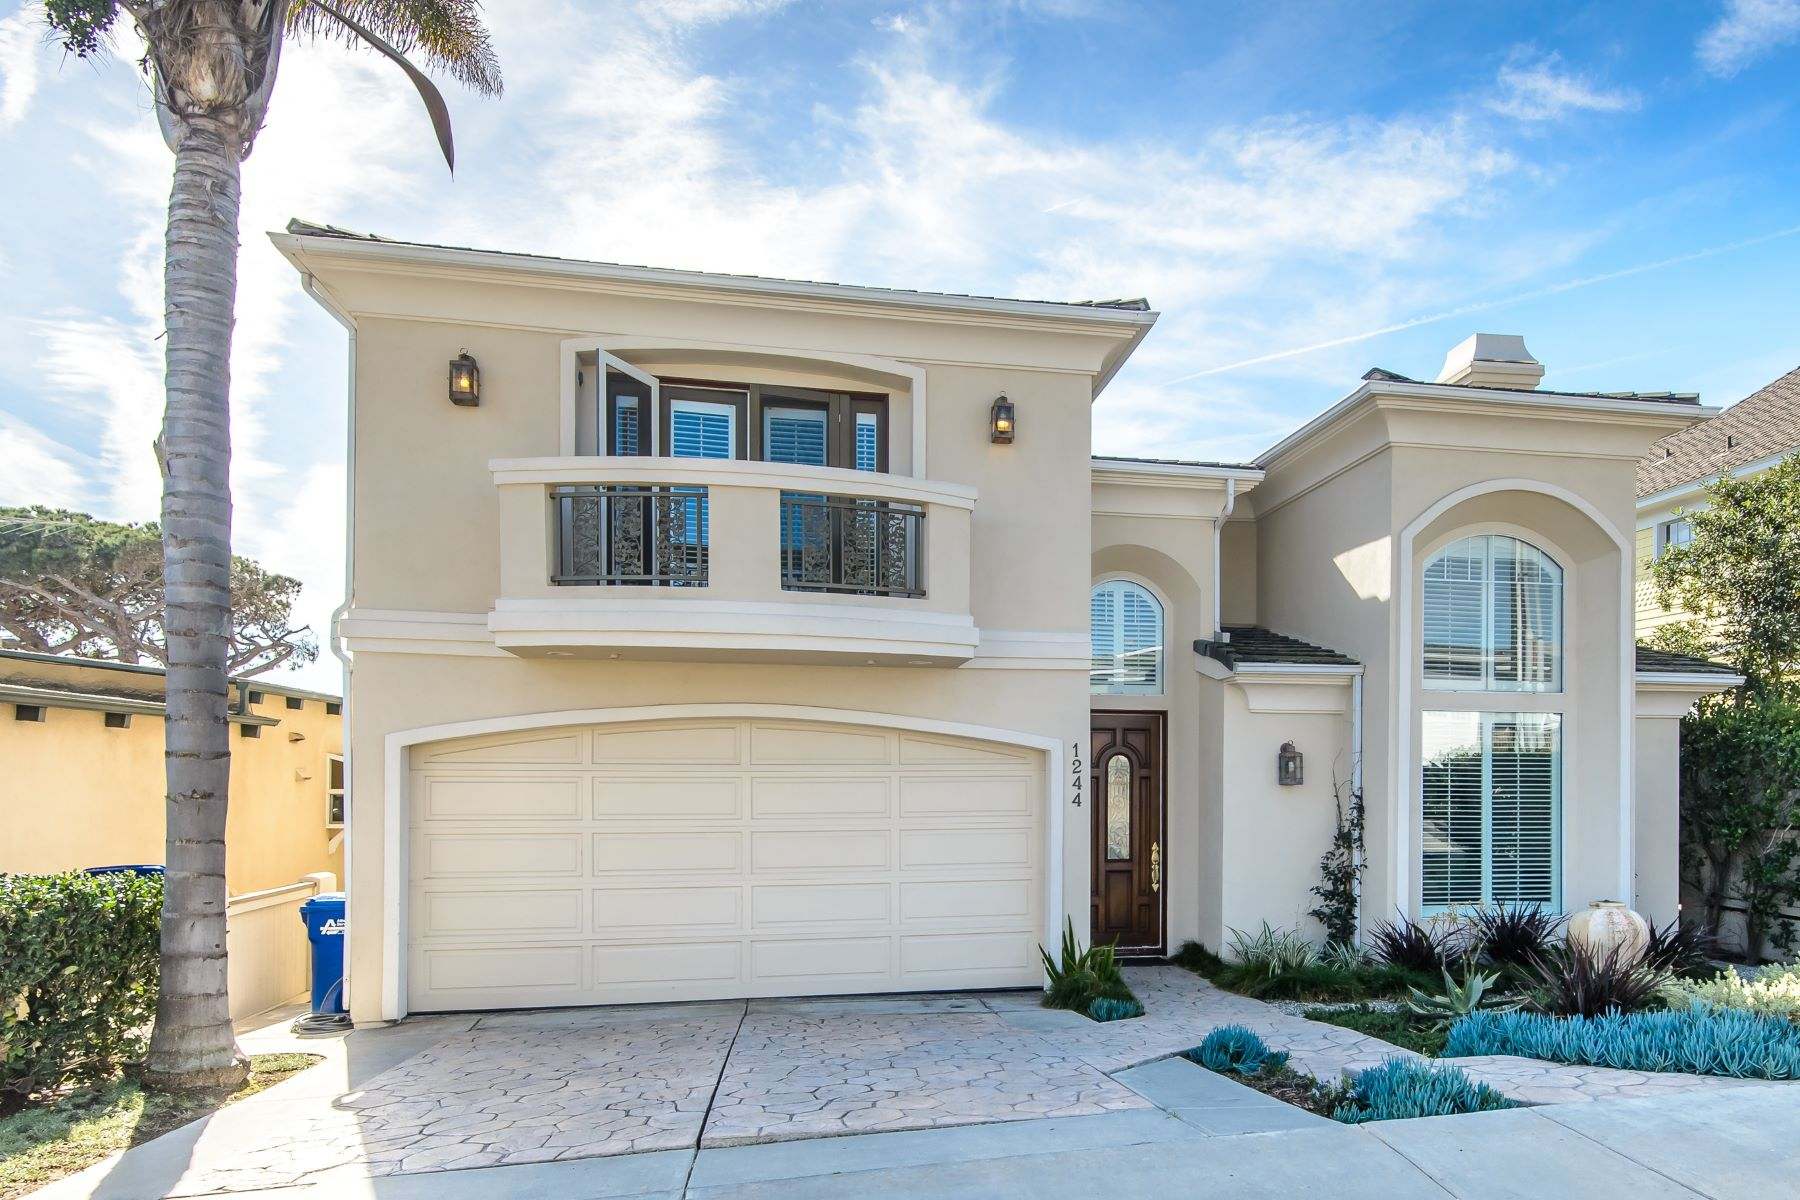 Single Family Home for Sale at 1244 9th Street Hermosa Beach, California 90254 United States